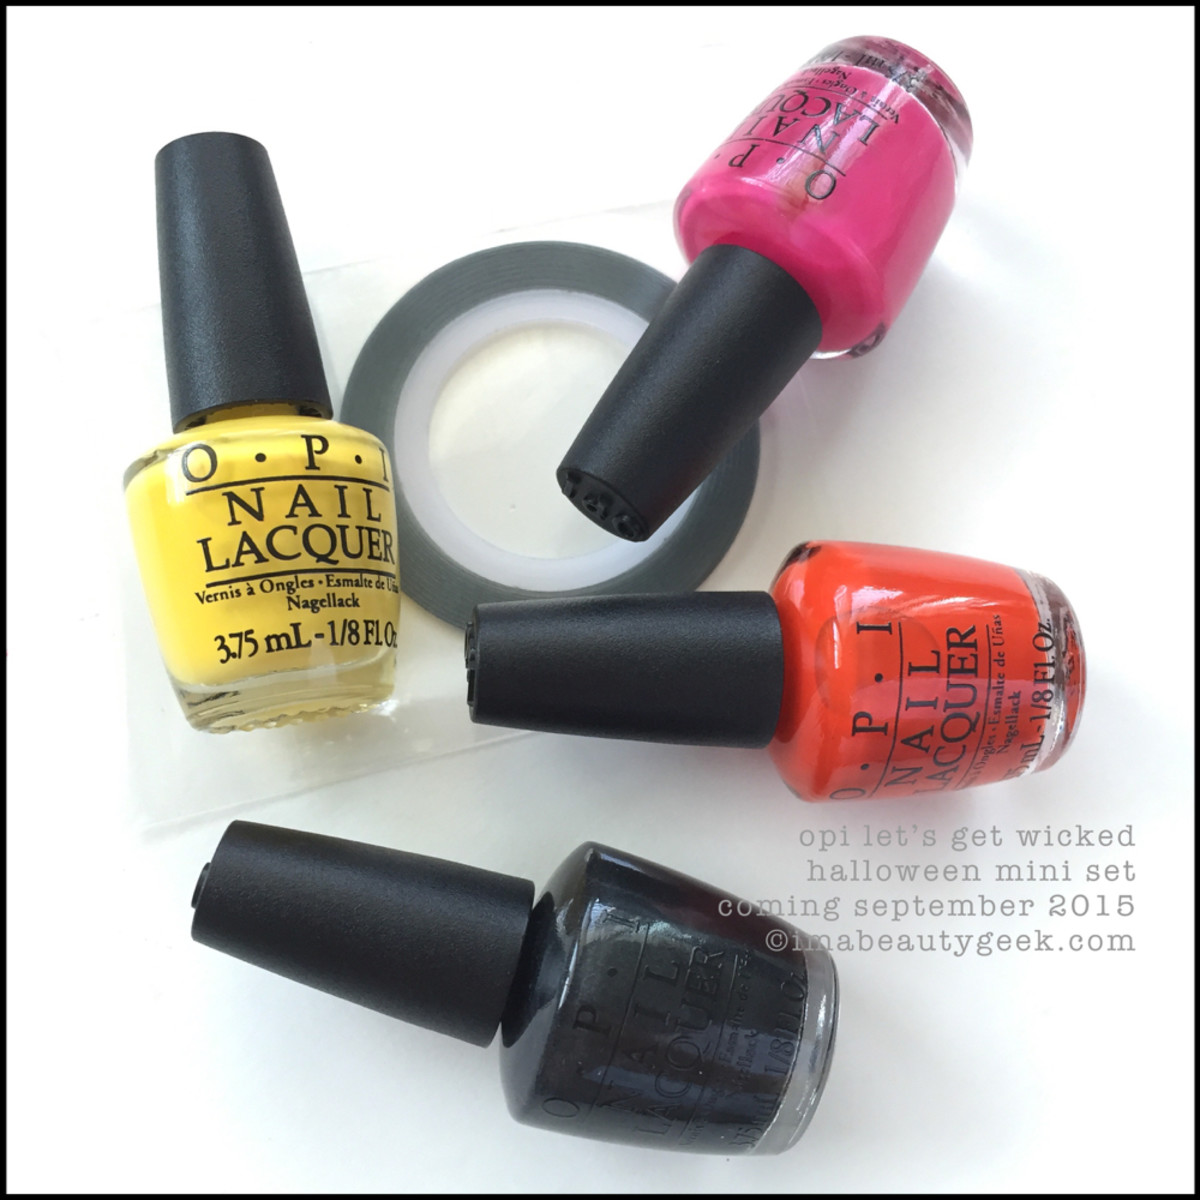 OPI Halloween 2015 OPI Lets Get Wicked Mini Set with tape